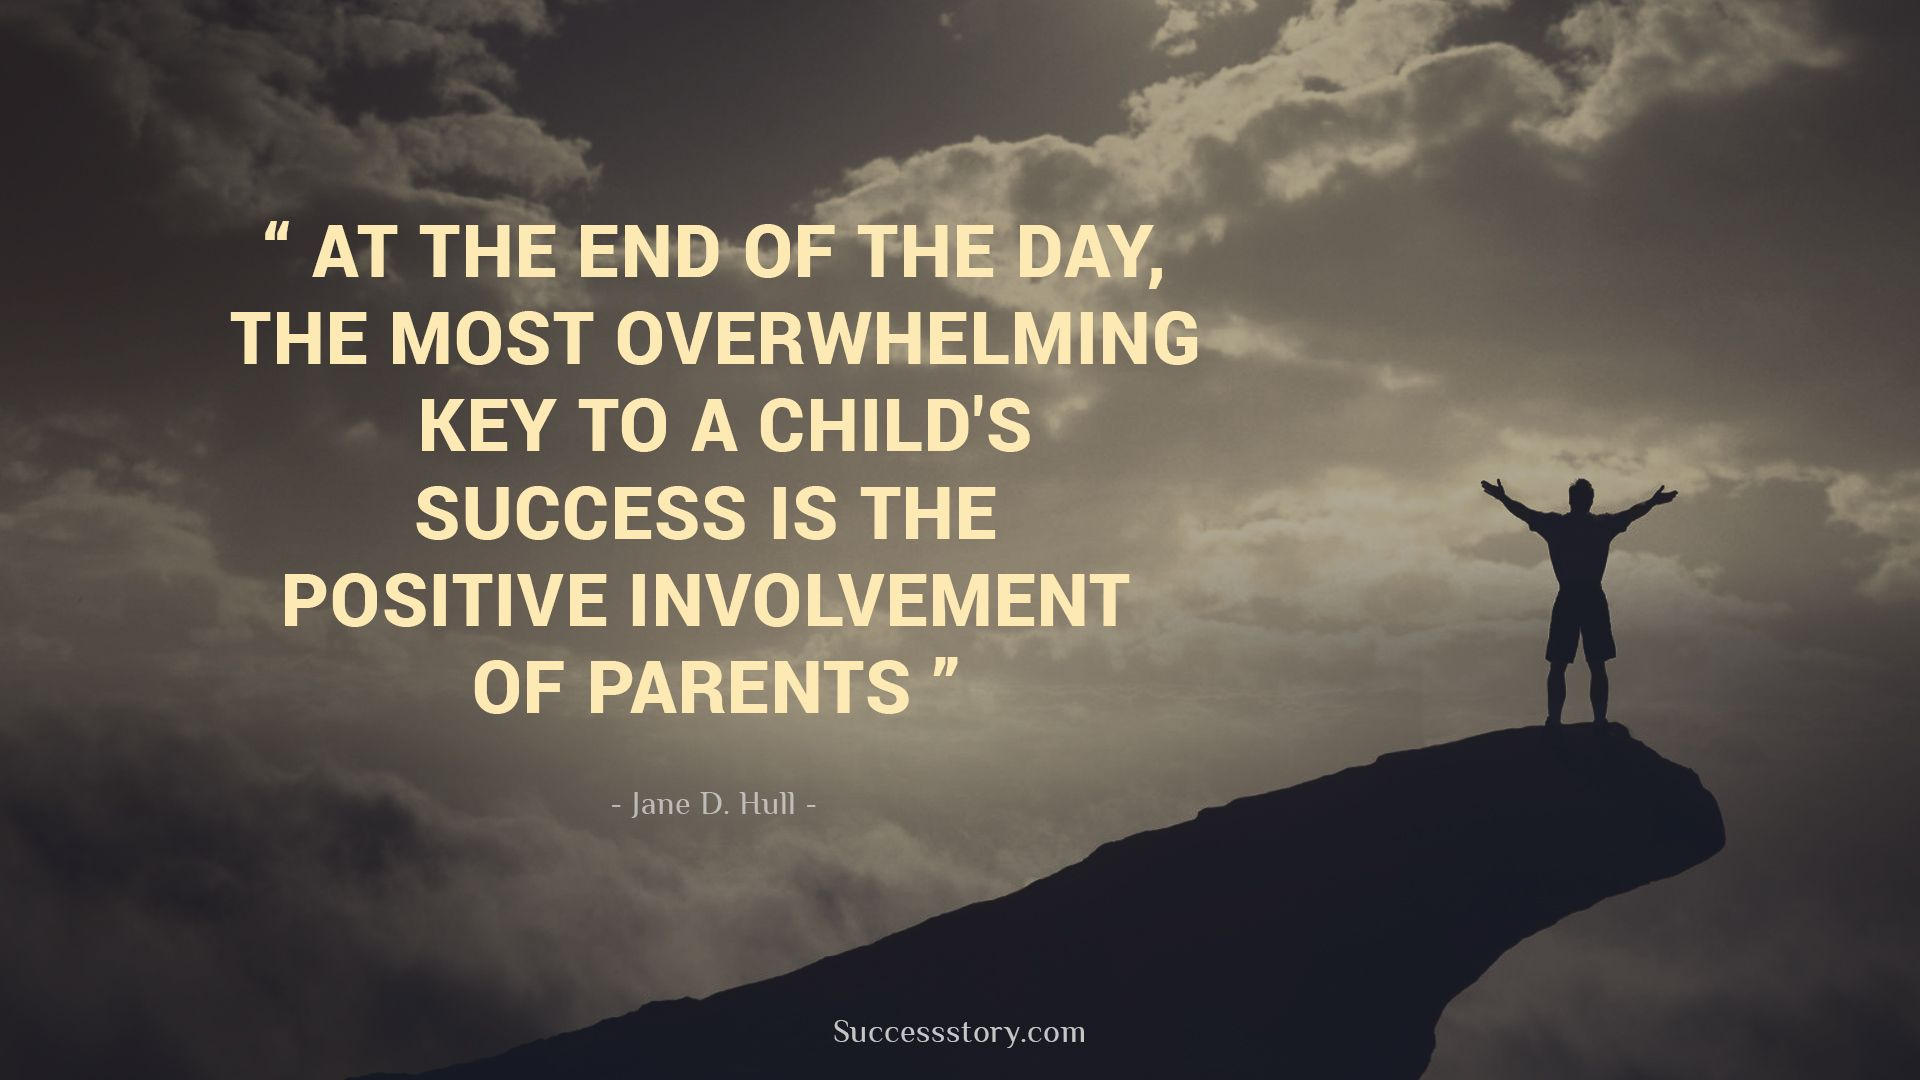 End Quotes At The End Of The Day The Most Overwhelming Key To A Child's